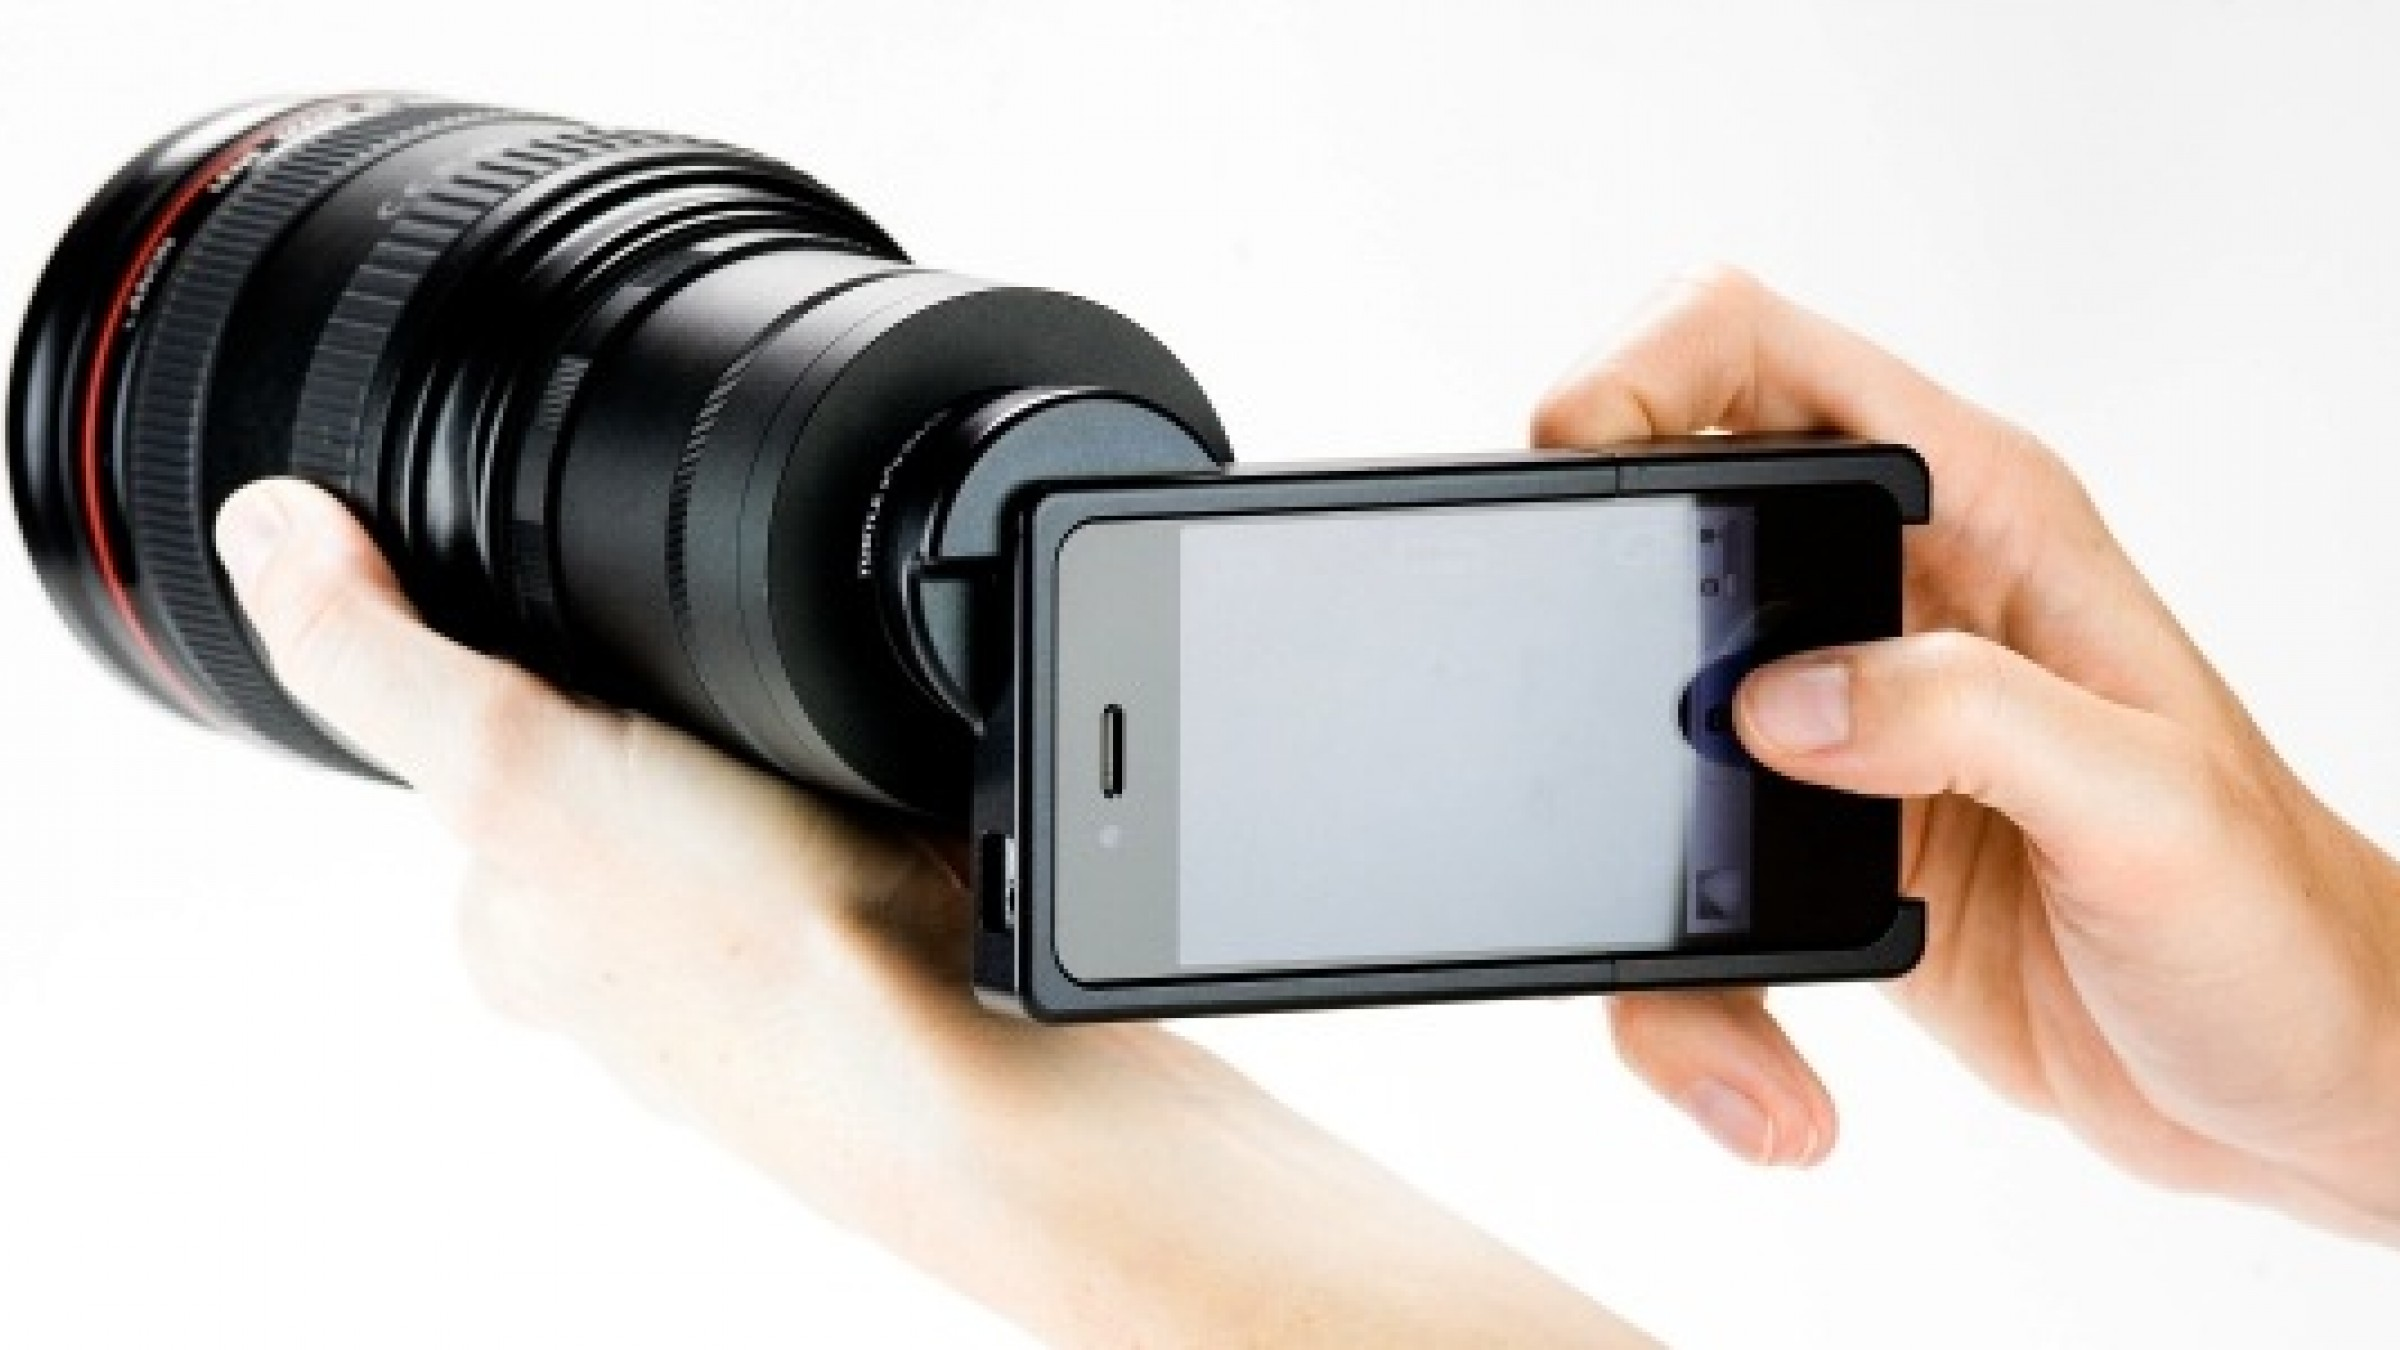 New adapter lets you use your slr lenses with your iphone. seriously